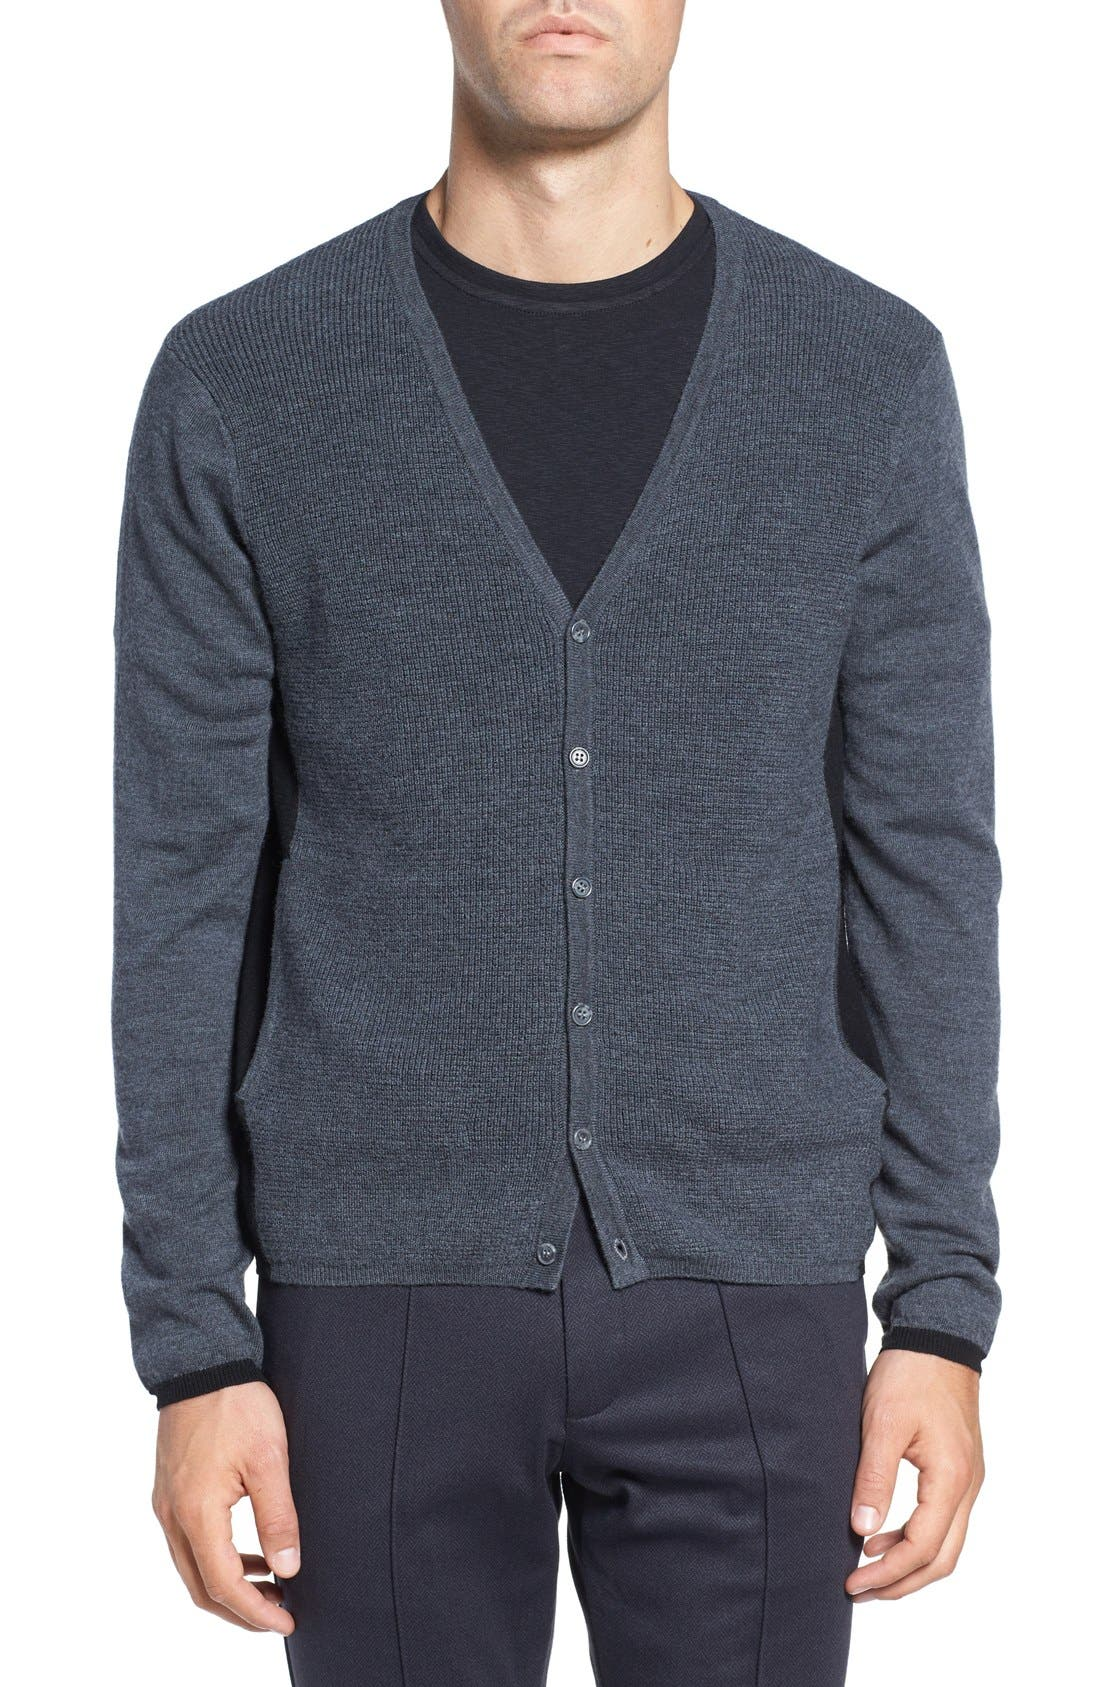 Colorblock Wool Button Cardigan,                             Main thumbnail 1, color,                             Charcoal